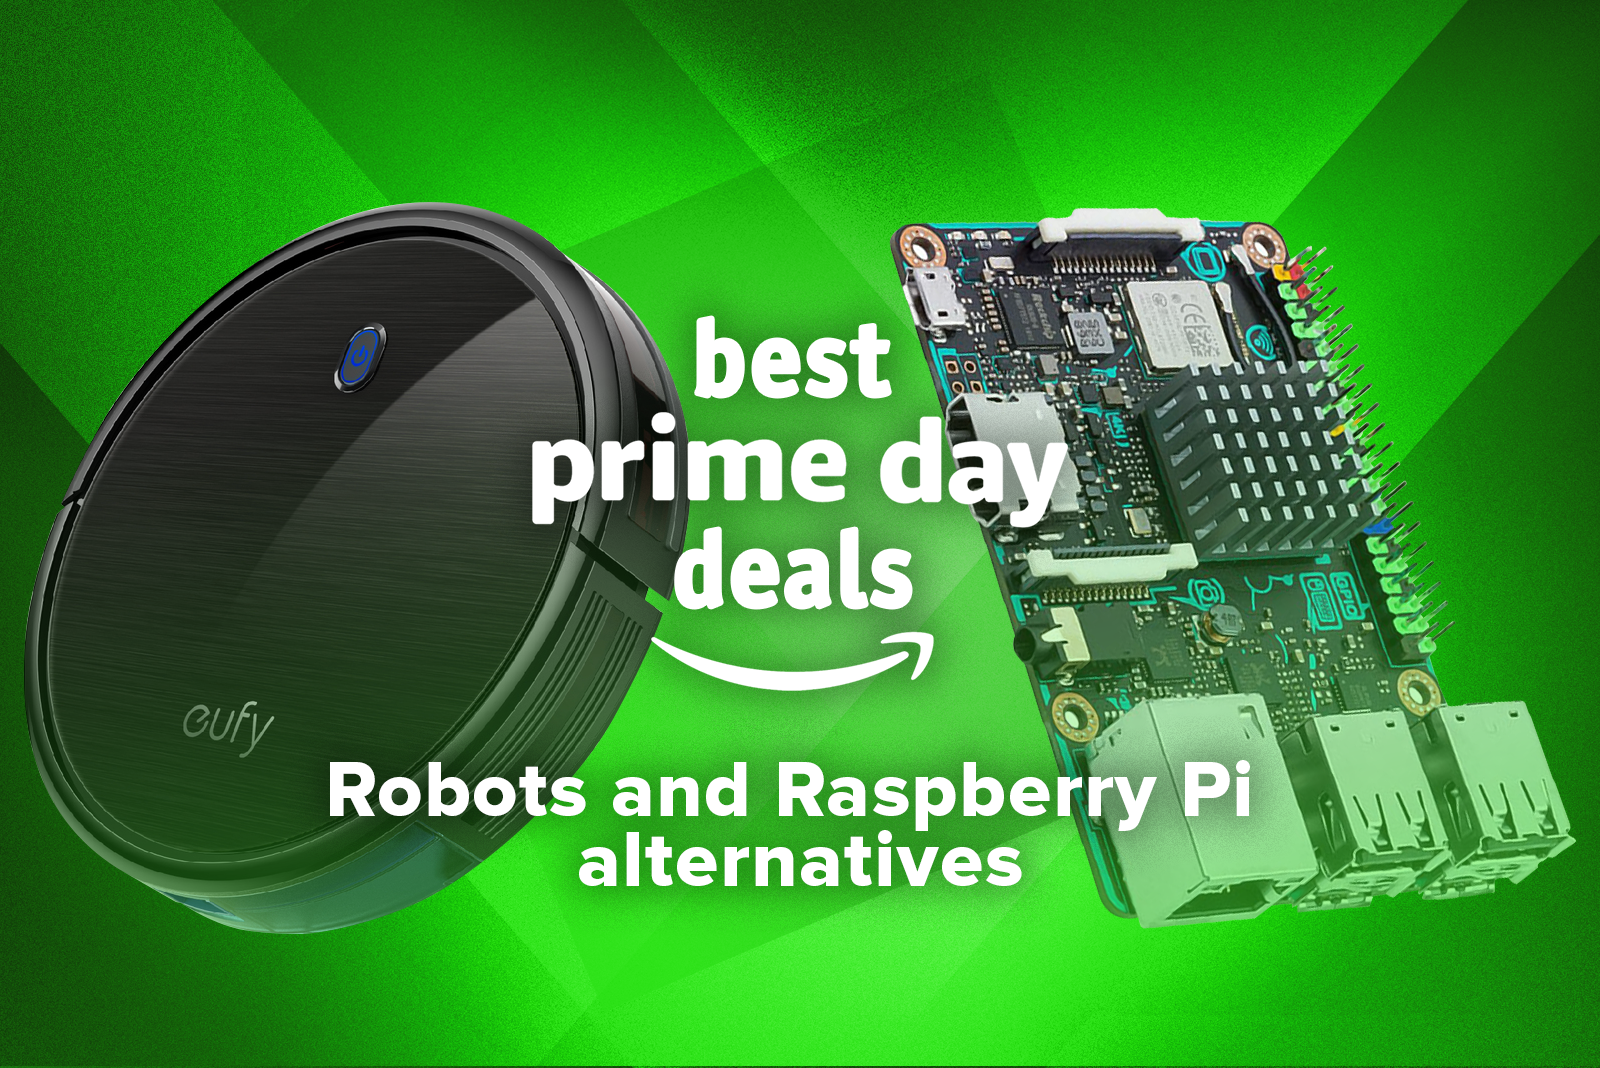 02 Best Prime Day Deals Robots And Raspberry Pi Alternatives, Cyber Security